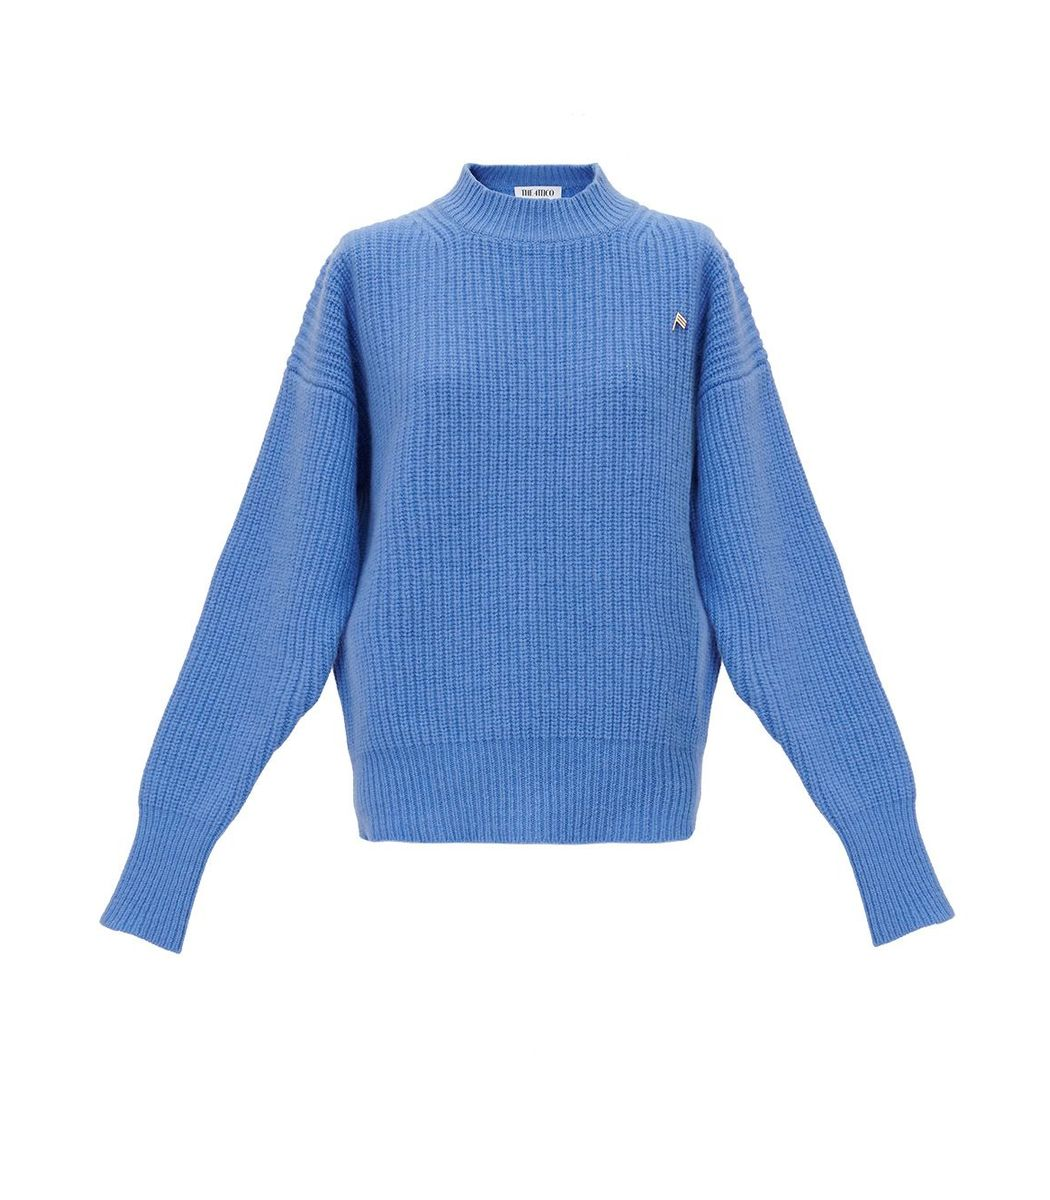 Attico Wools Blue Ribbed Wool Sweater